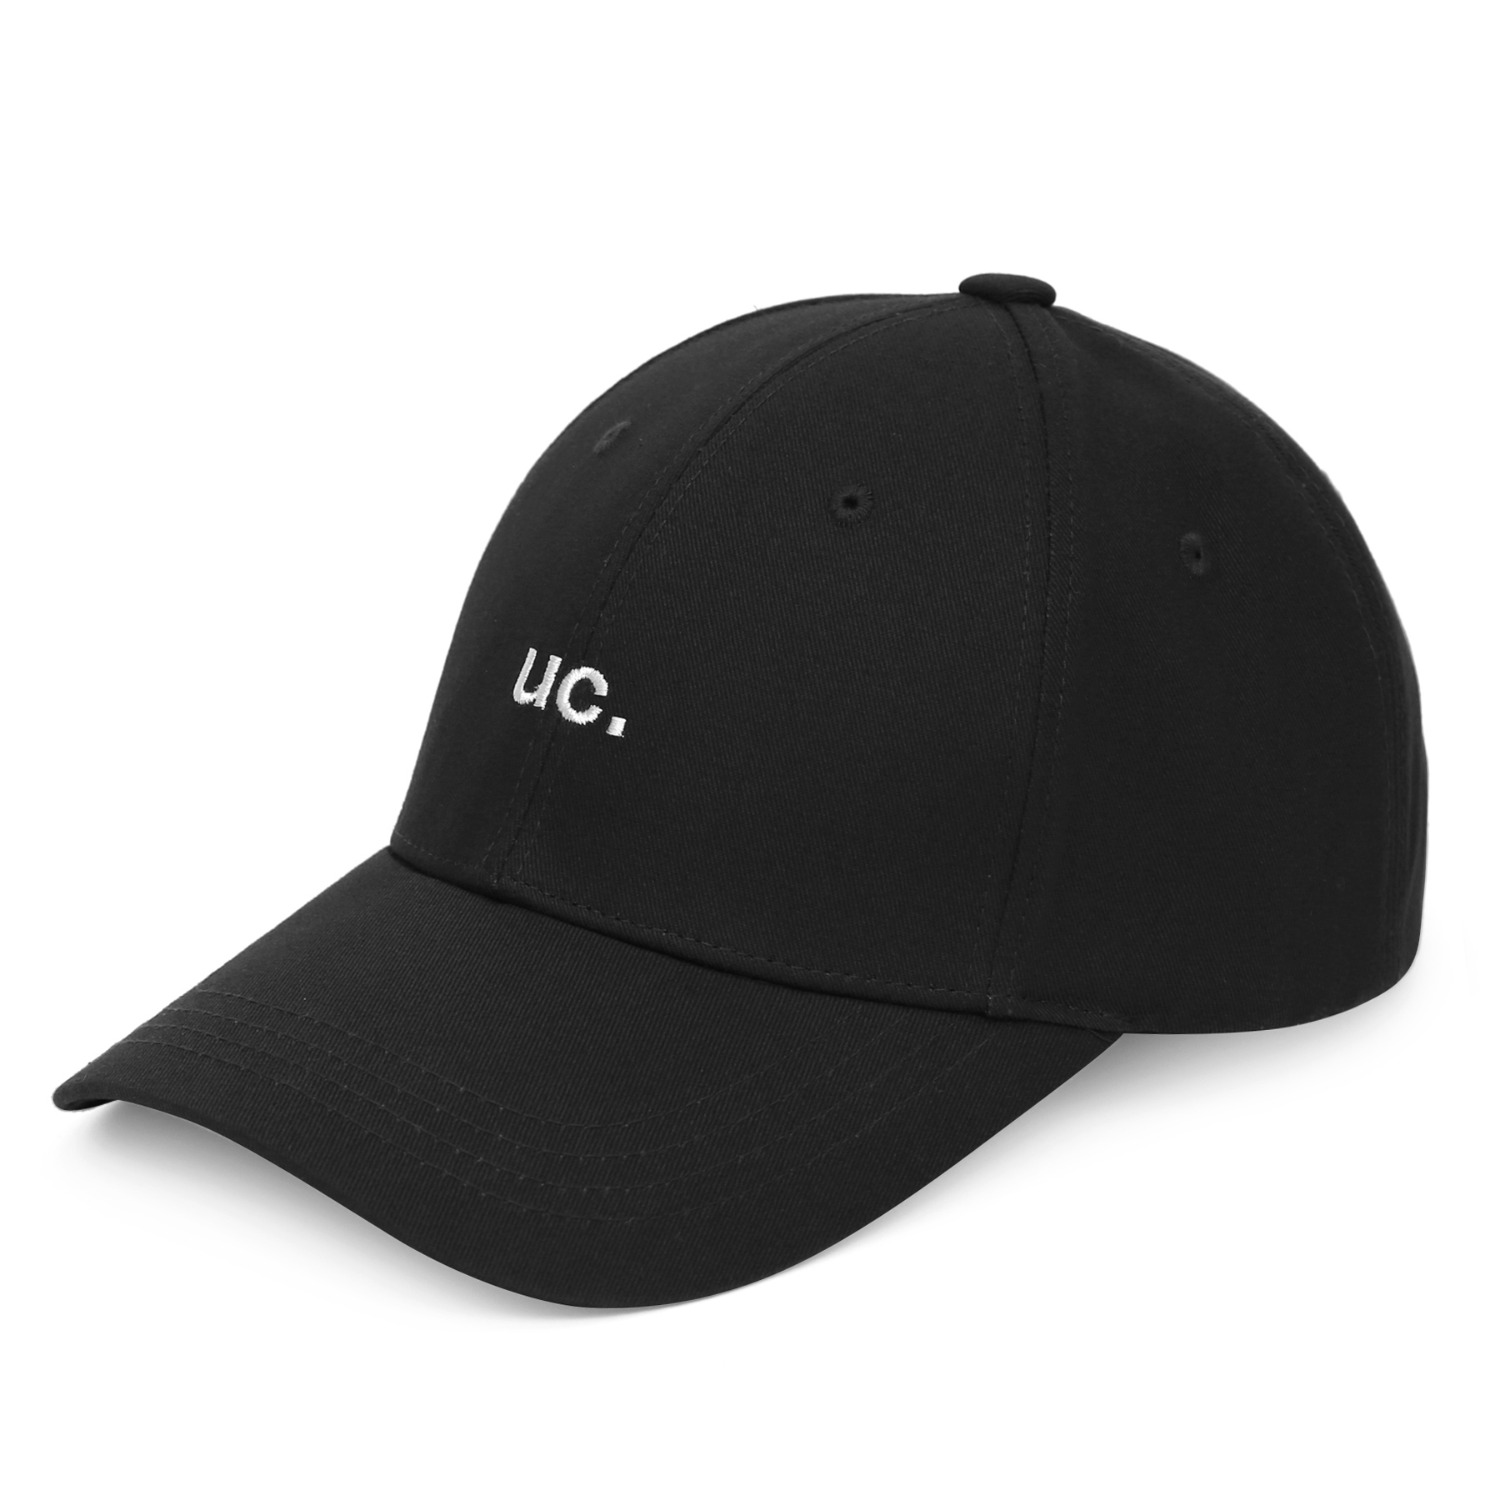 UC / DEEP B B / M BLACK